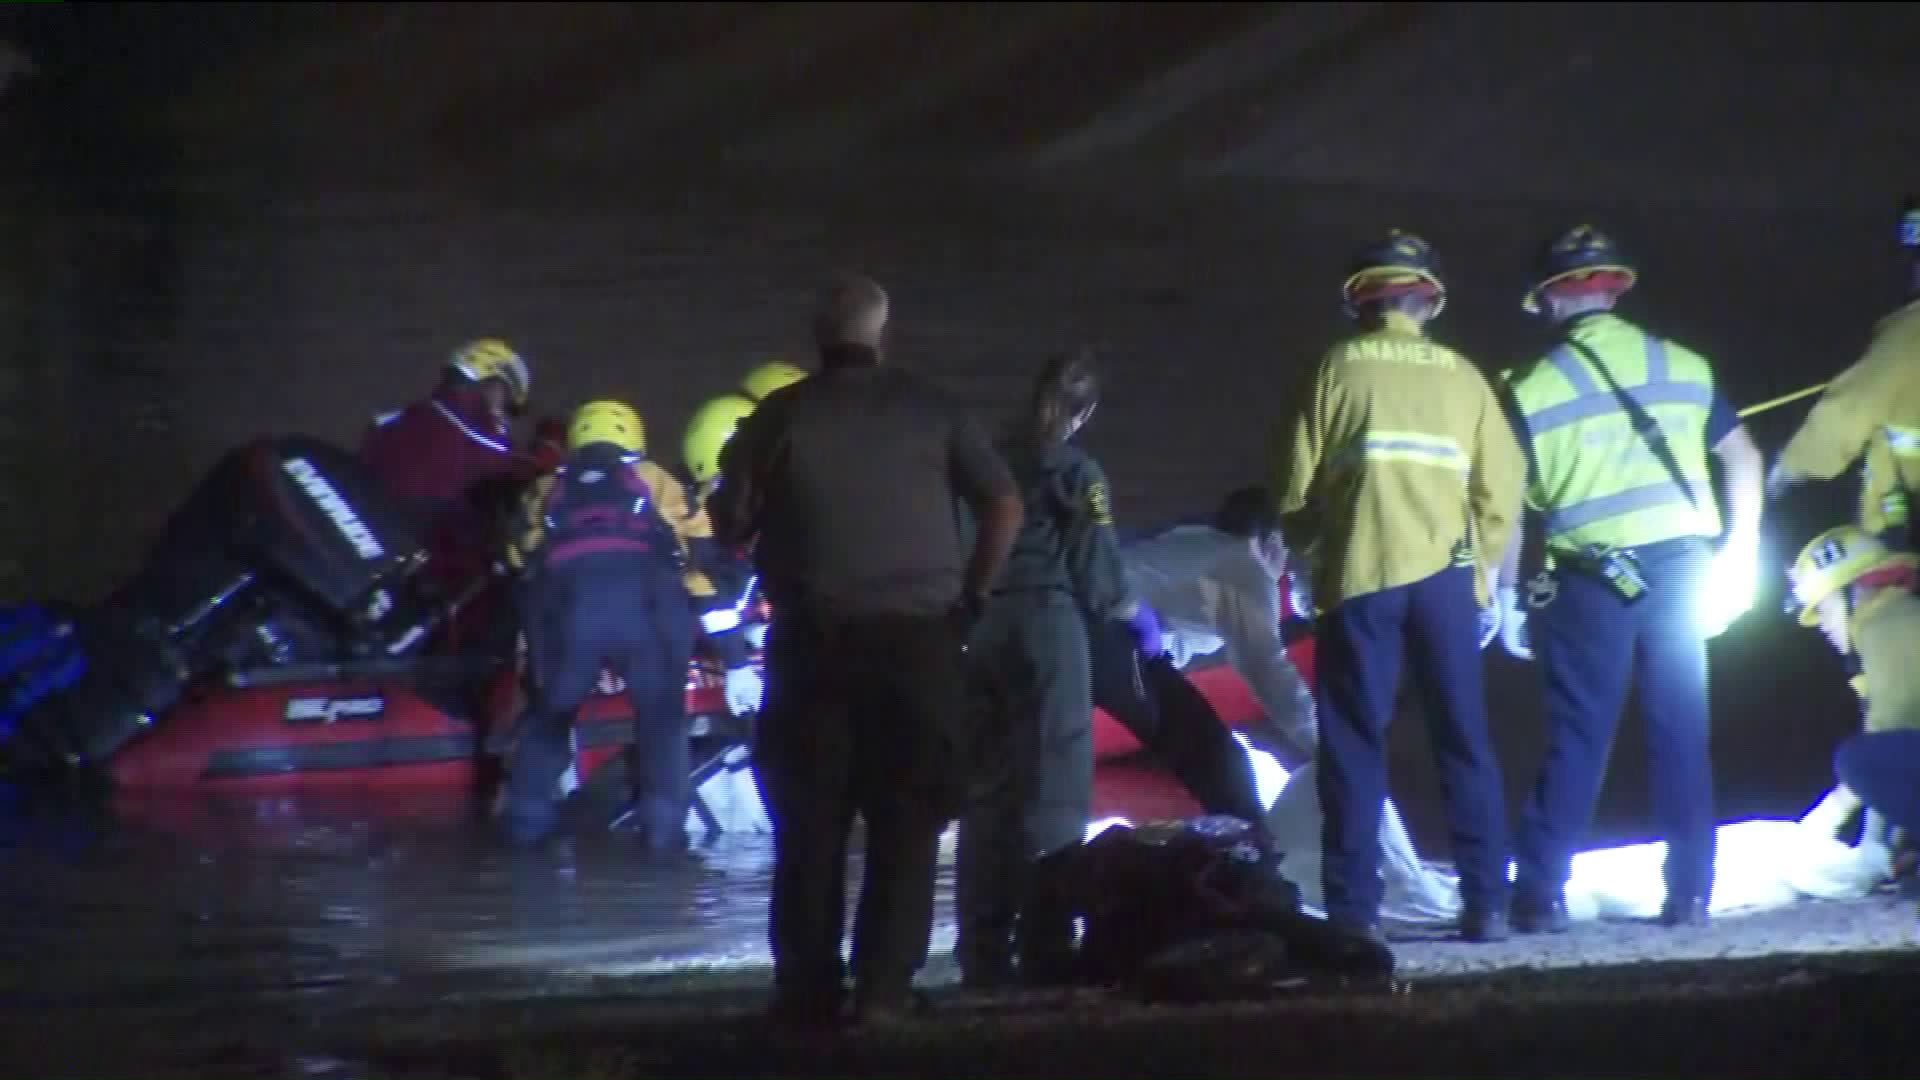 Authorities investigate the death of a man whose body was found in an Anaheim flood channel on Sept. 4, 2018. (Credit: KTLA)